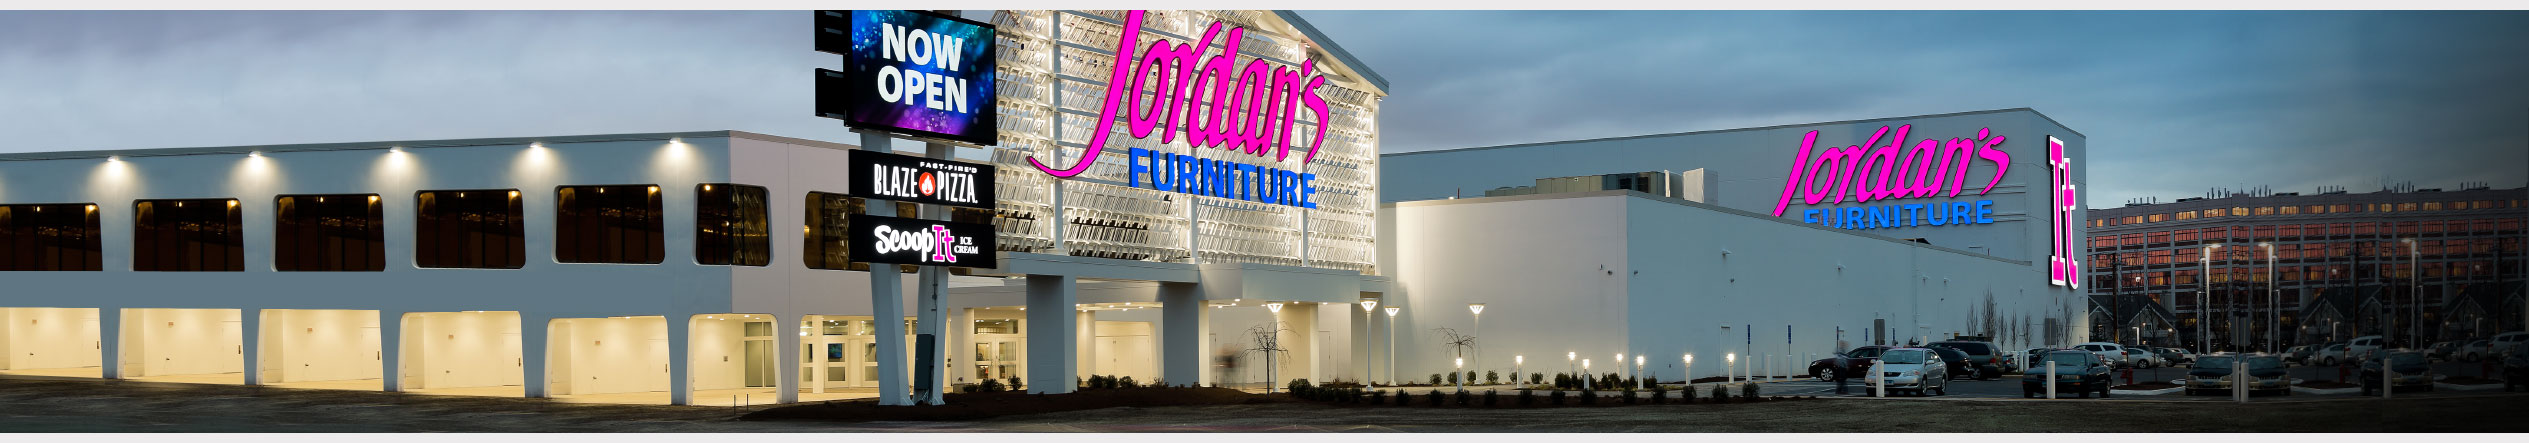 Shop Furniture Mattresses At Jordan S Furniture New Haven Ct